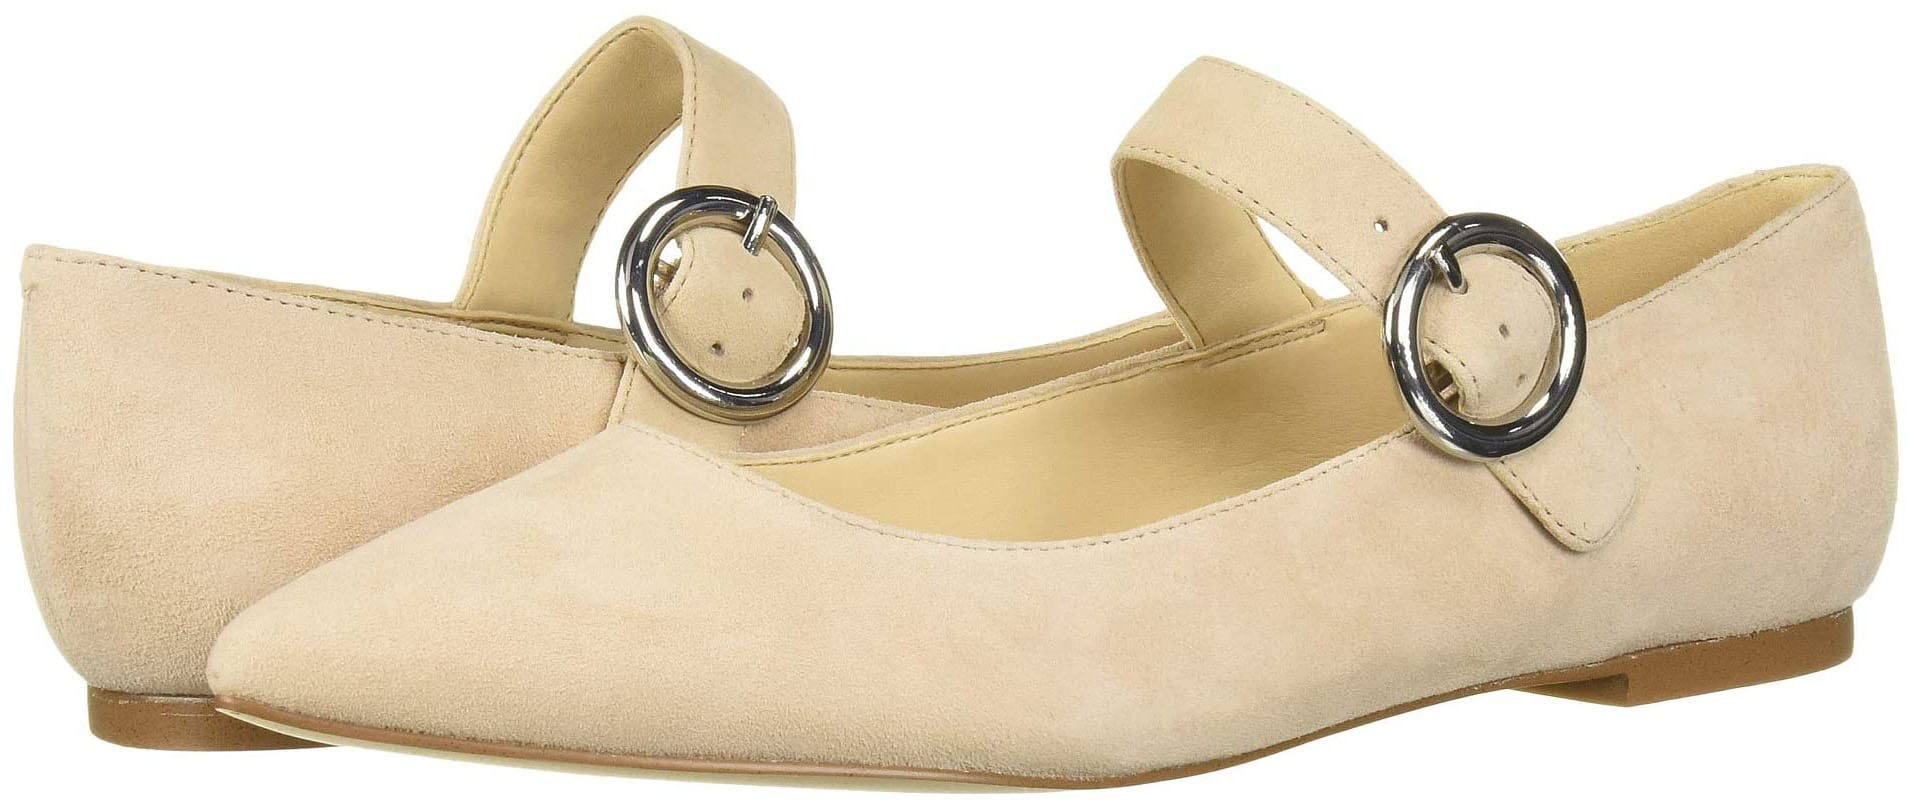 Give your look a sleek and classy finish with Nine West's Aimee Mary Jane ballet flats